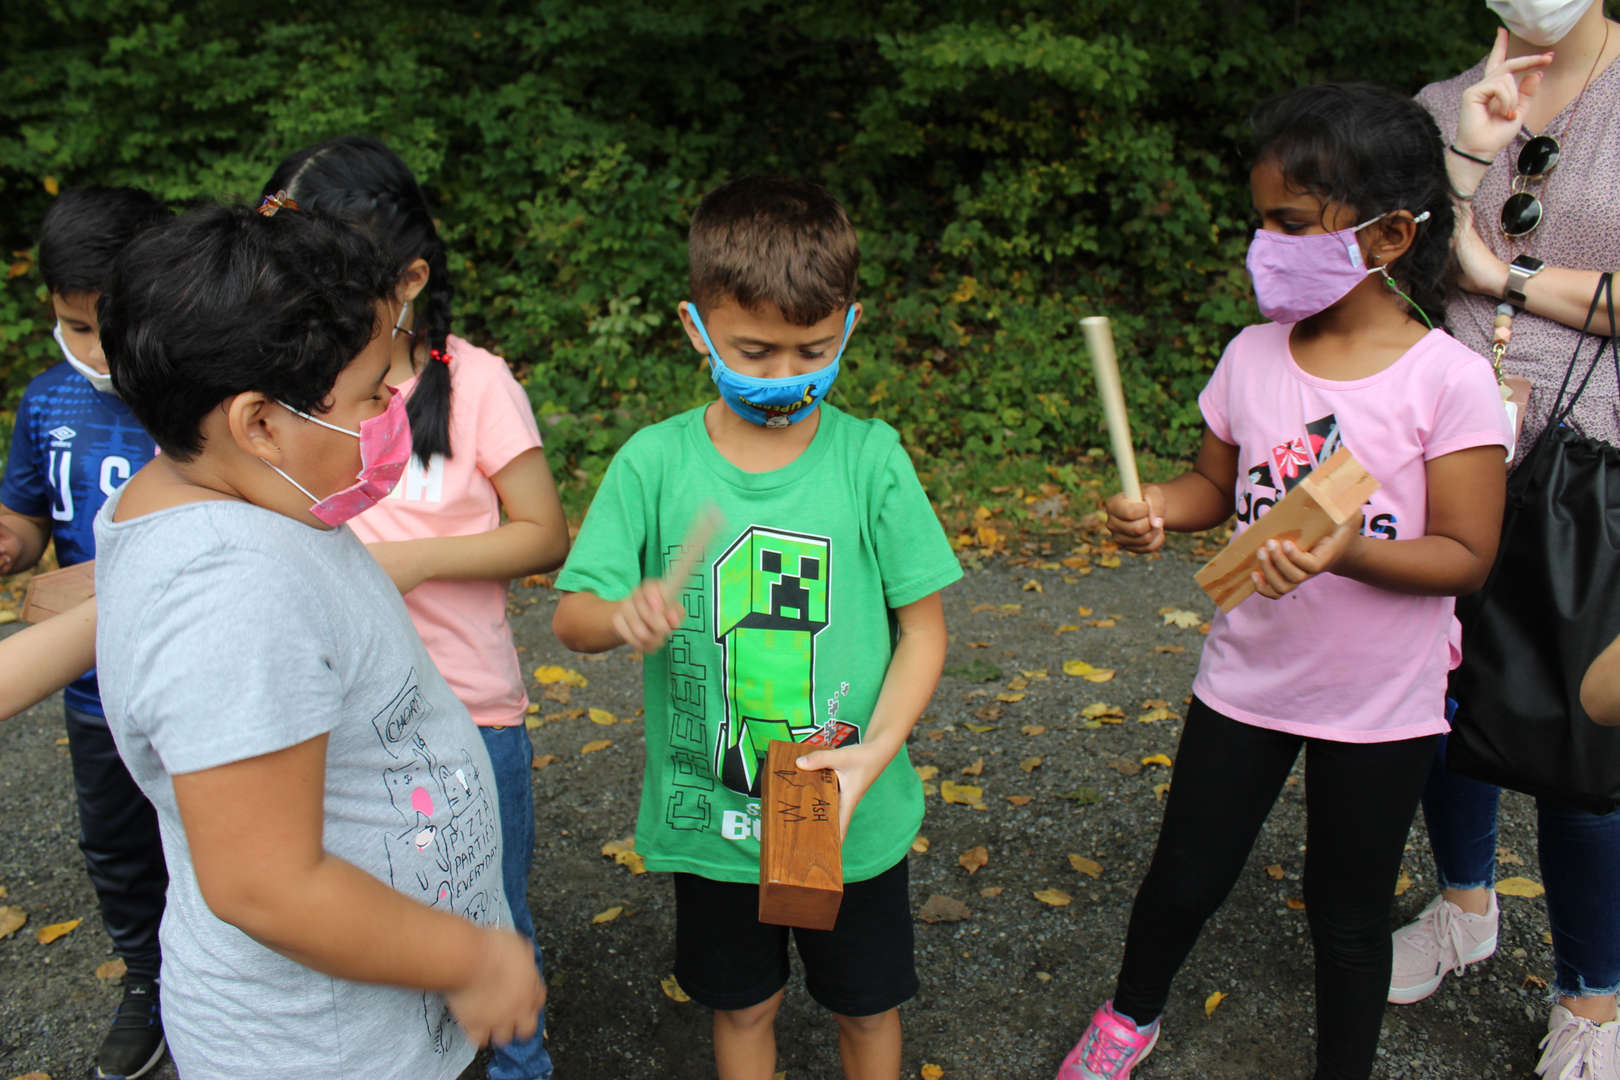 Pocantico Hills students compared sounds that different types of wood made when hit with a stick.